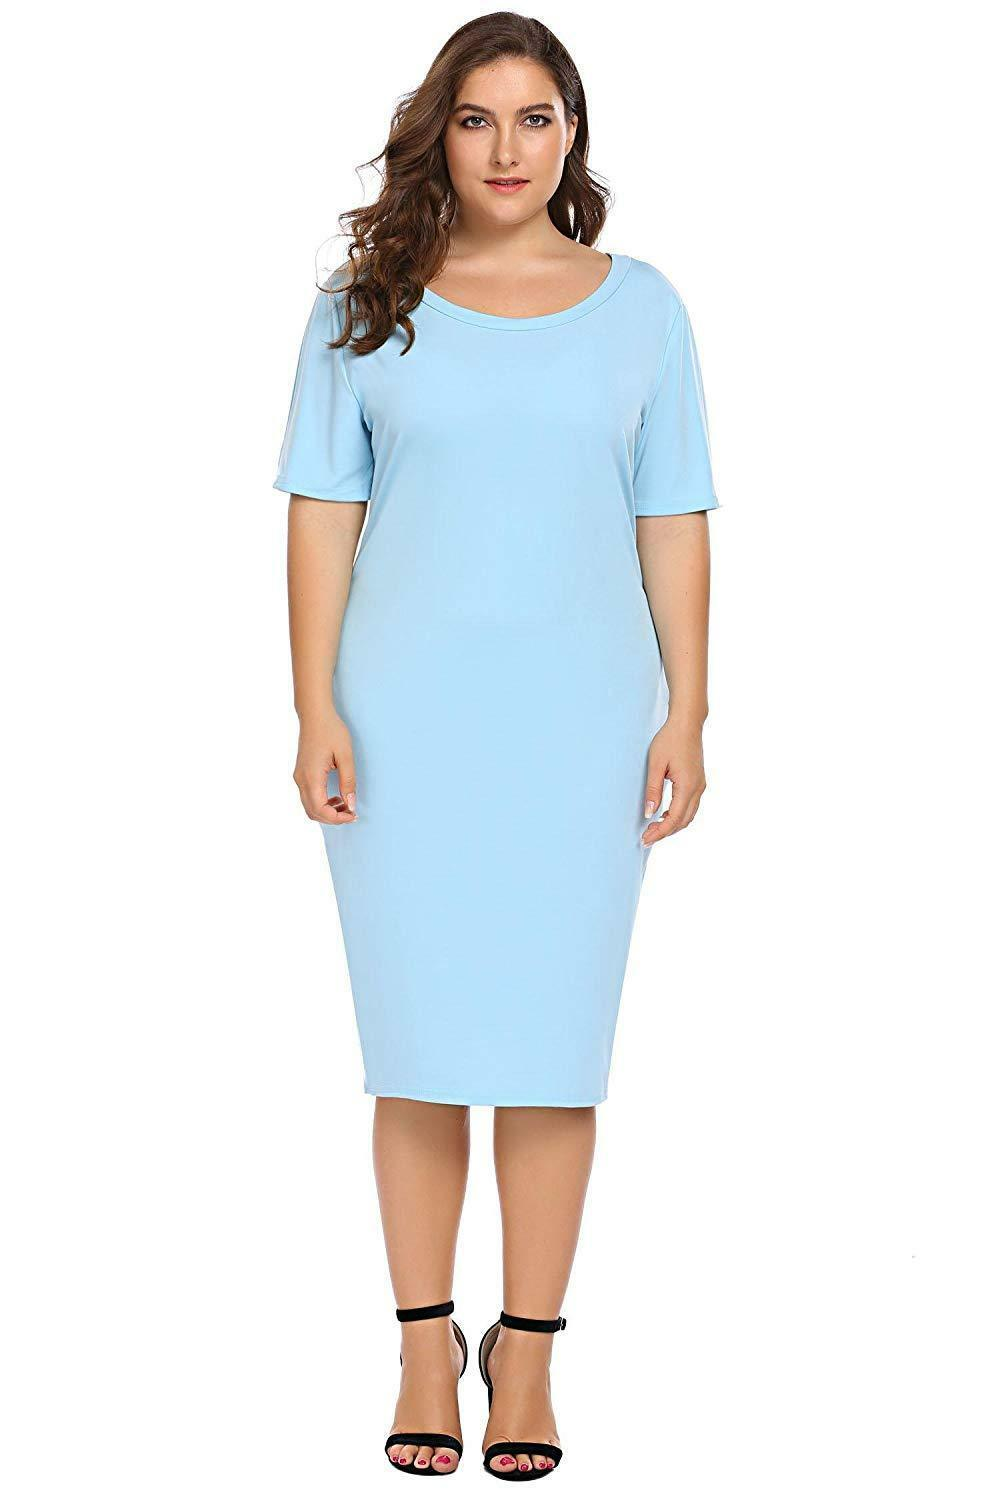 Zeagoo Women Plus Size Loose Fit Short Sleeve O-Neck Casual Midi Dress image 2